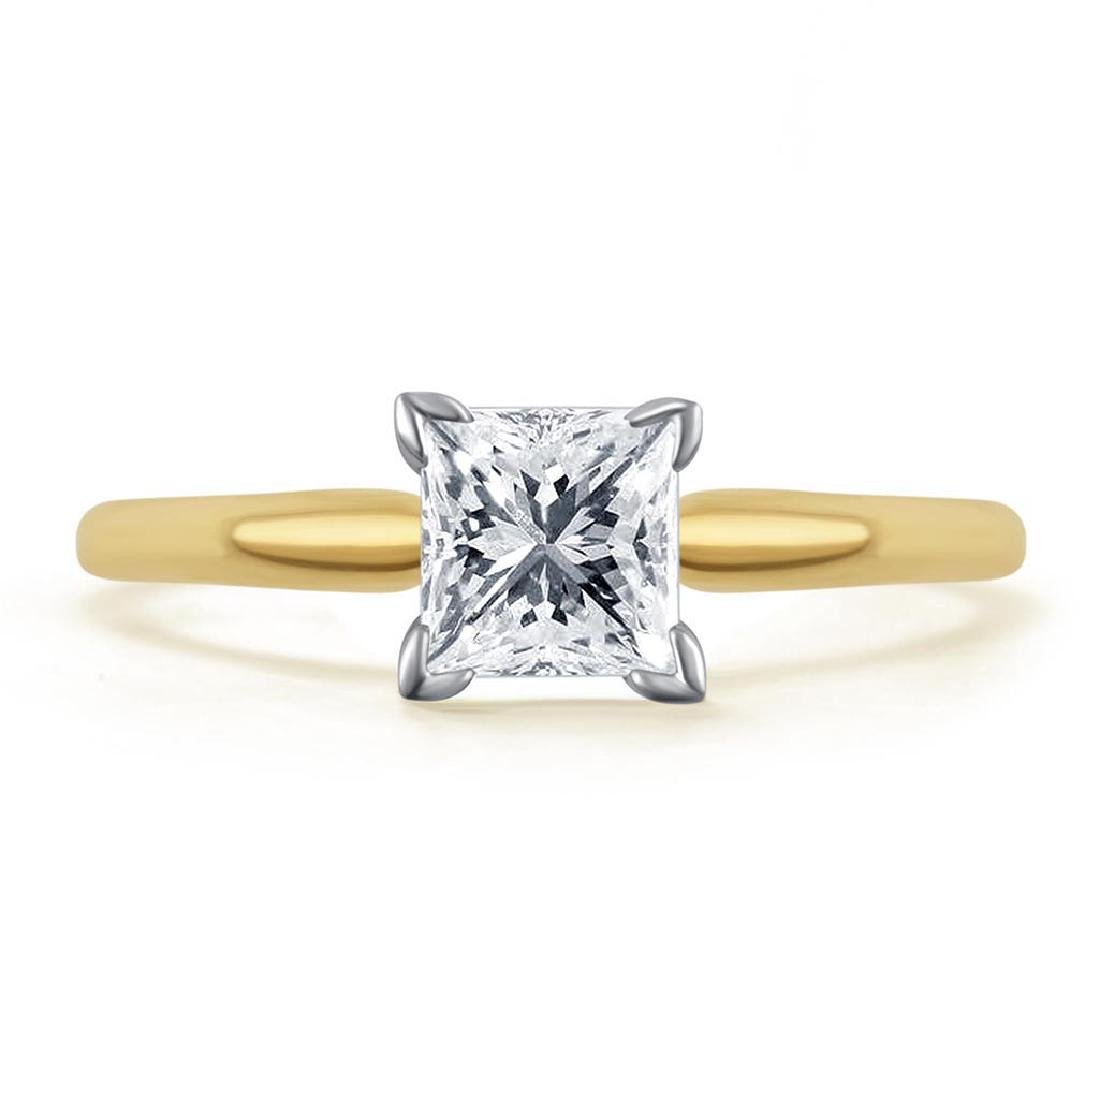 CERTIFIED 0.51 CTW PRINCESS F/SI1 SOLITAIRE RING IN 14K